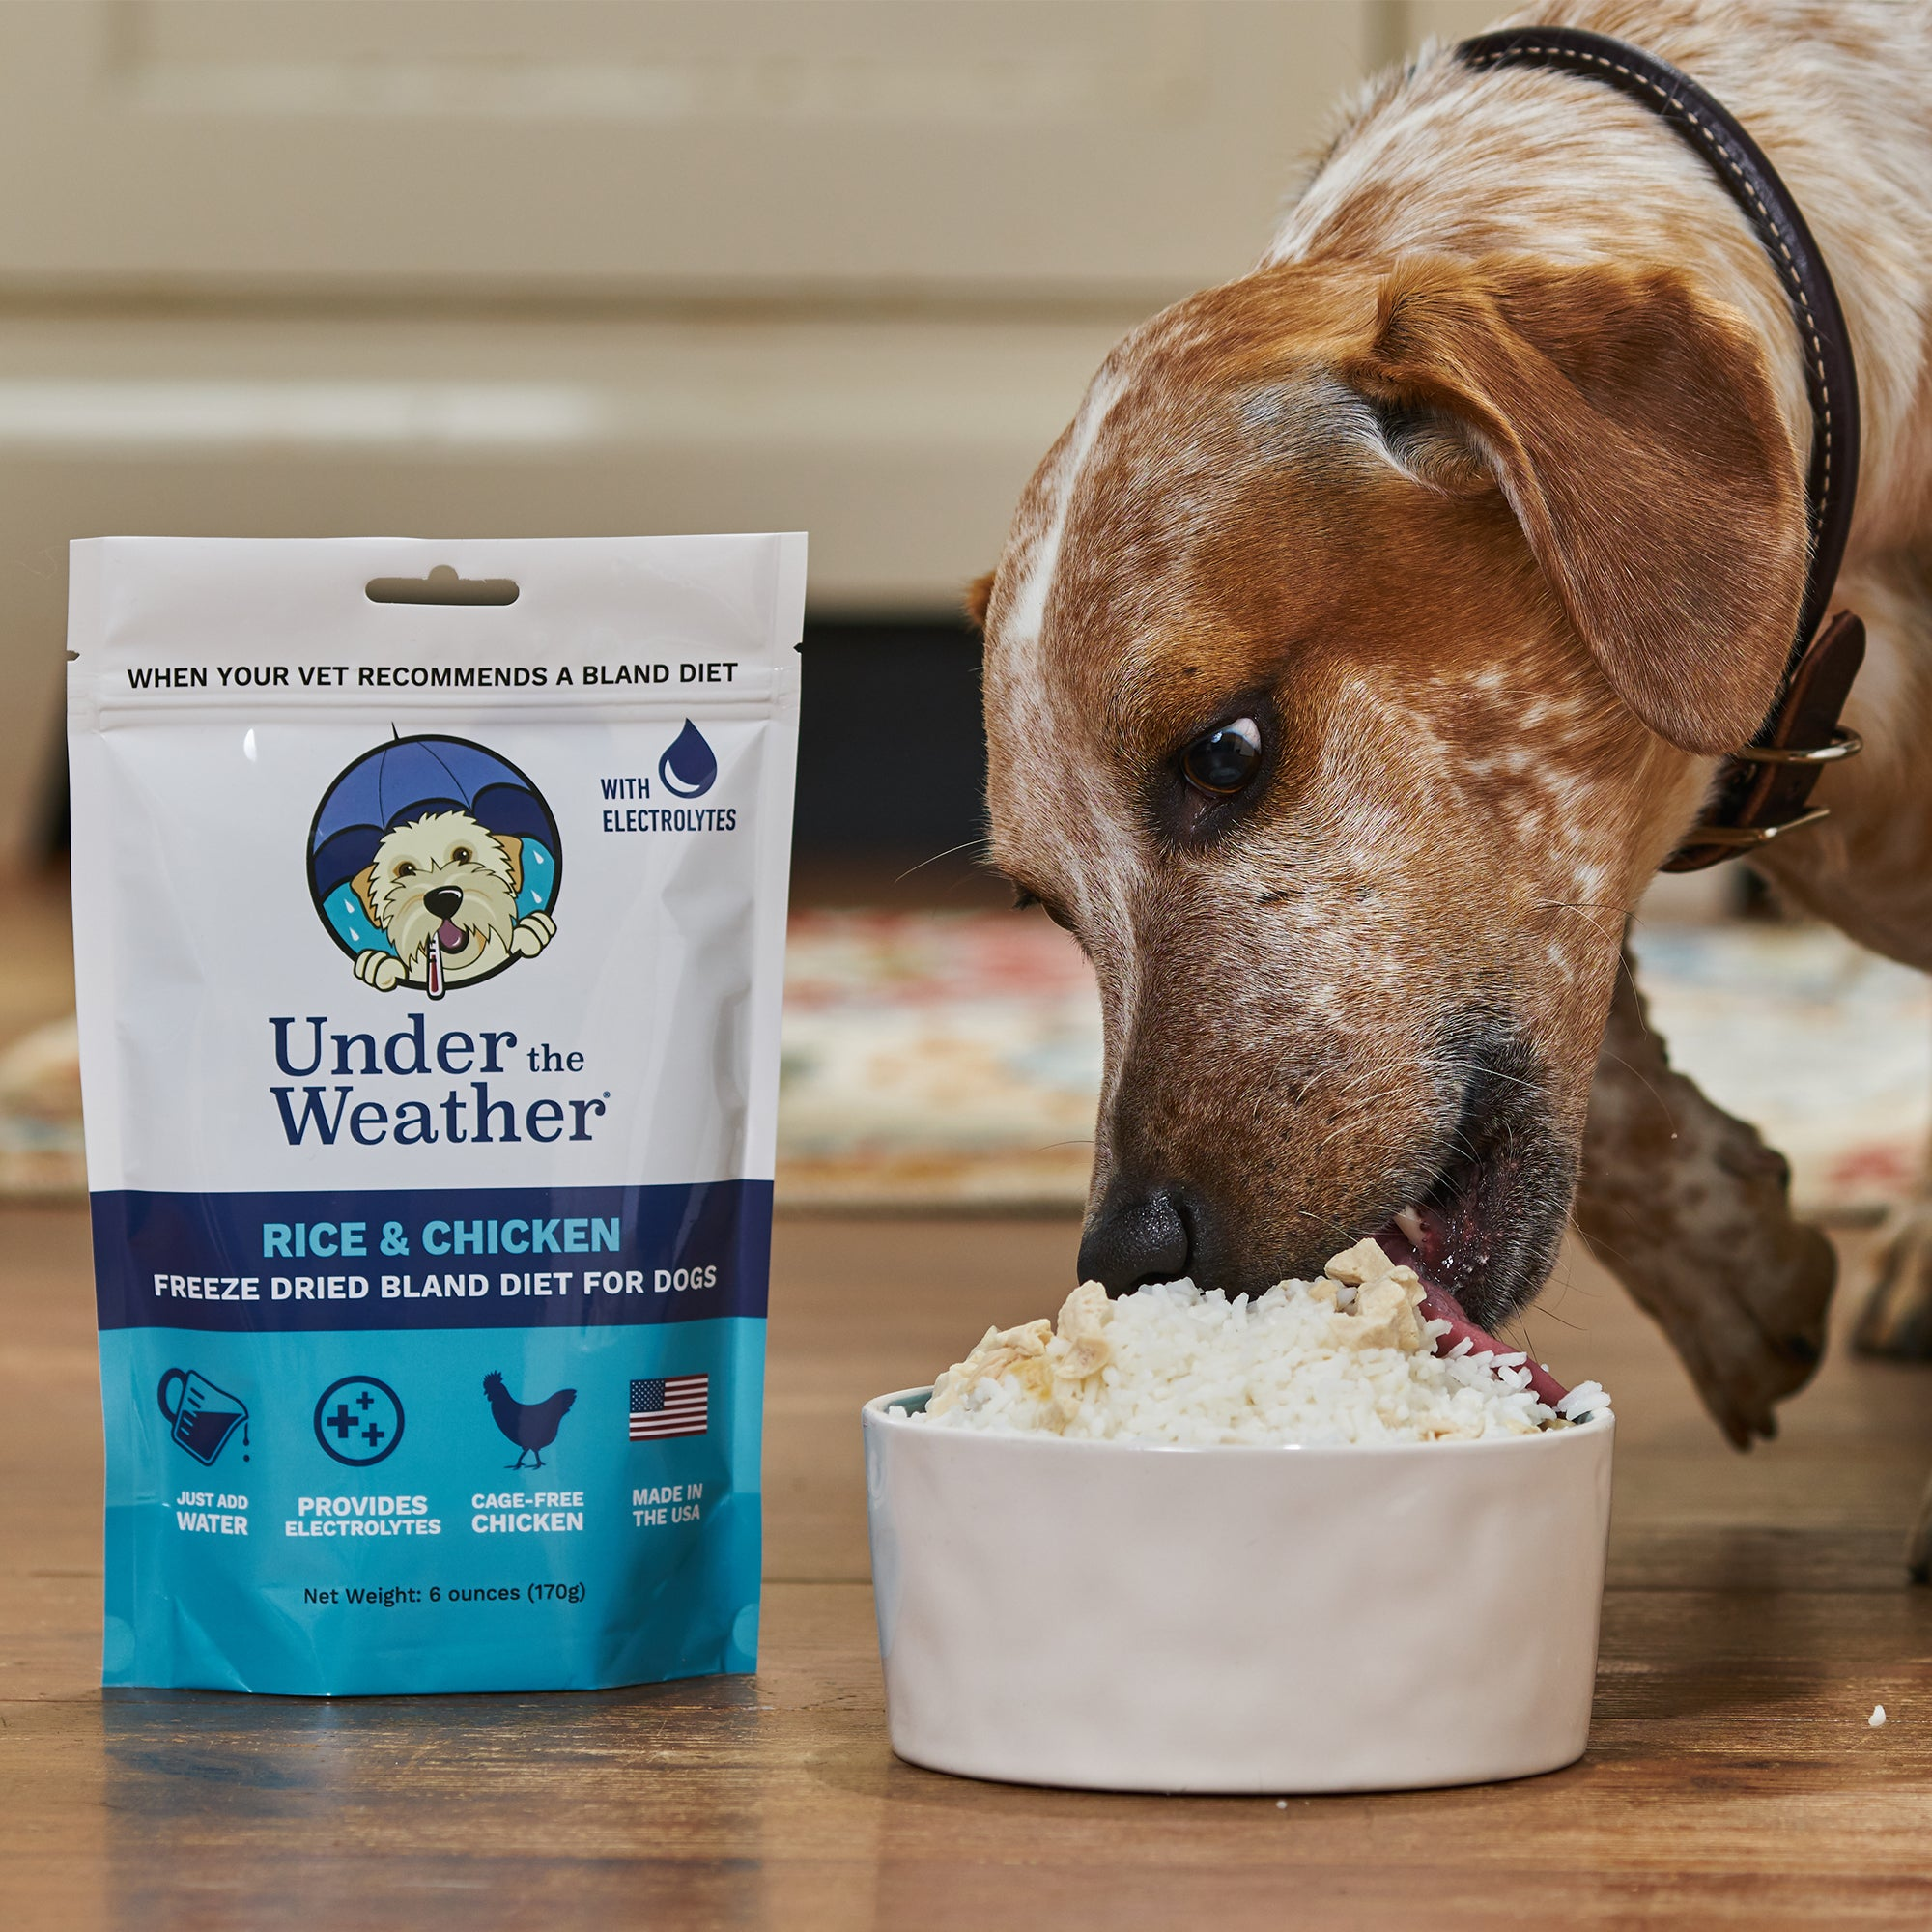 Chicken & Rice Bland Diet For Dogs - 6 pack